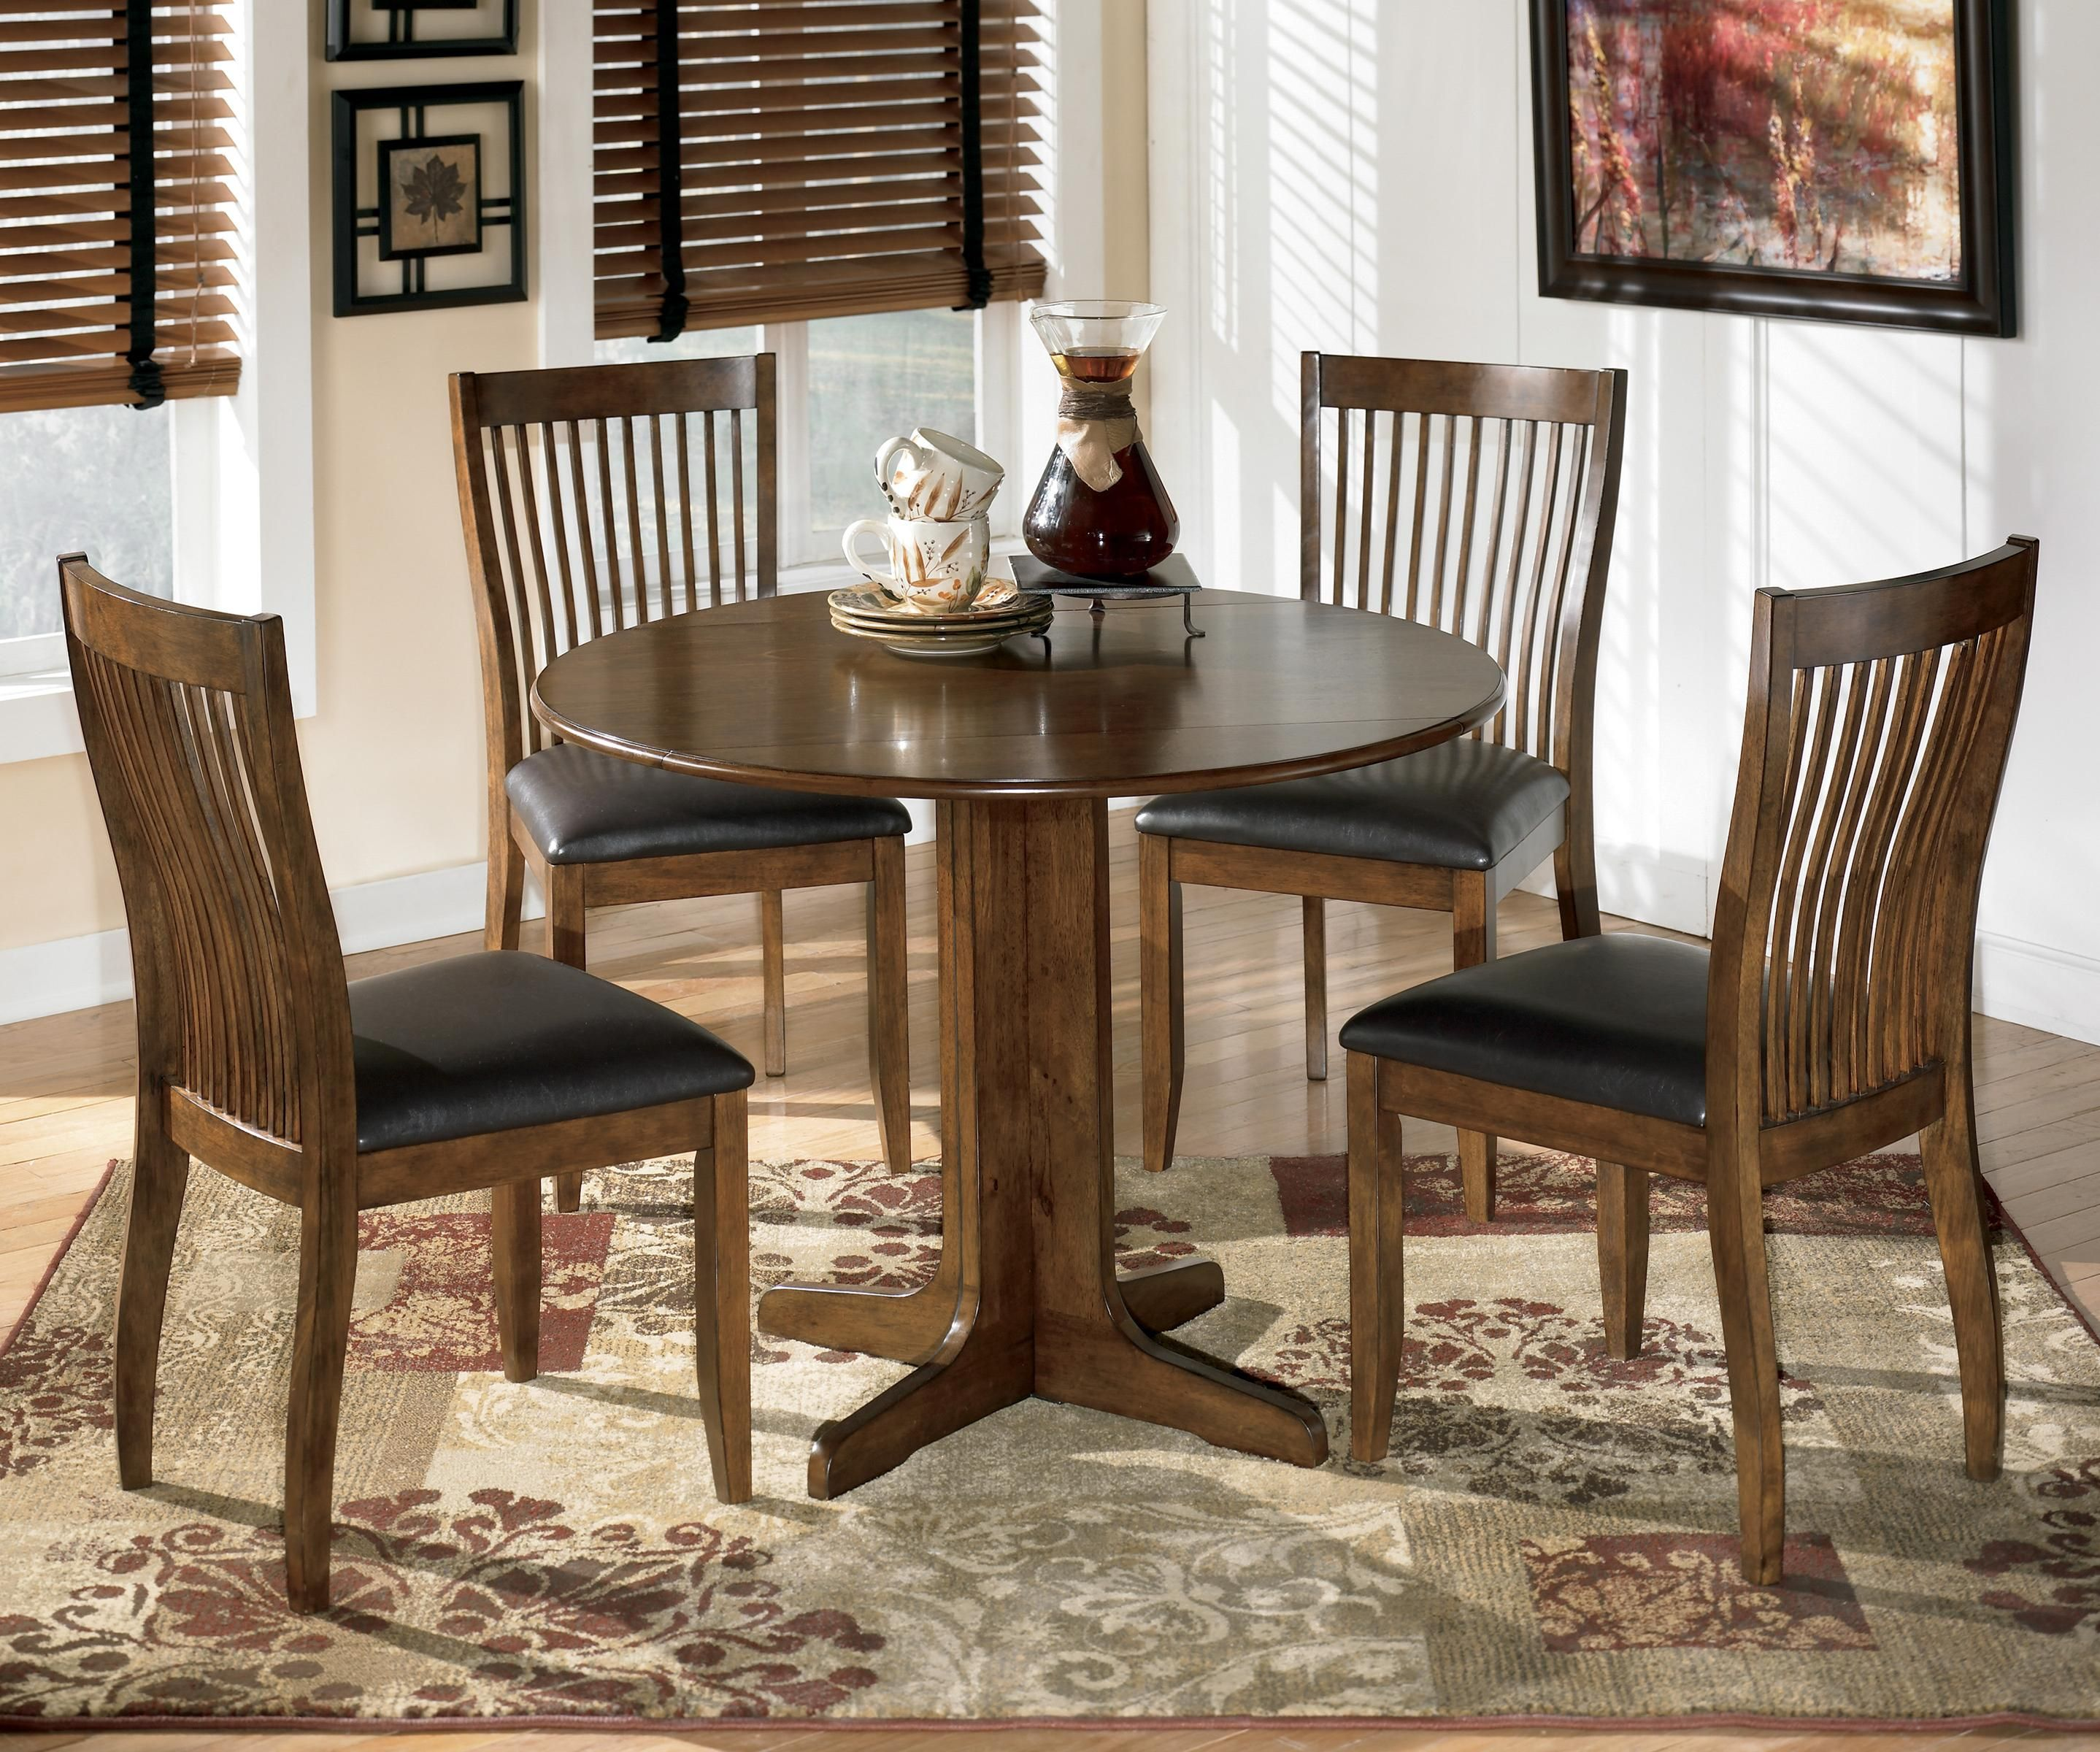 5 Piece Round Drop Leaf Table Set Springwell Pinterest